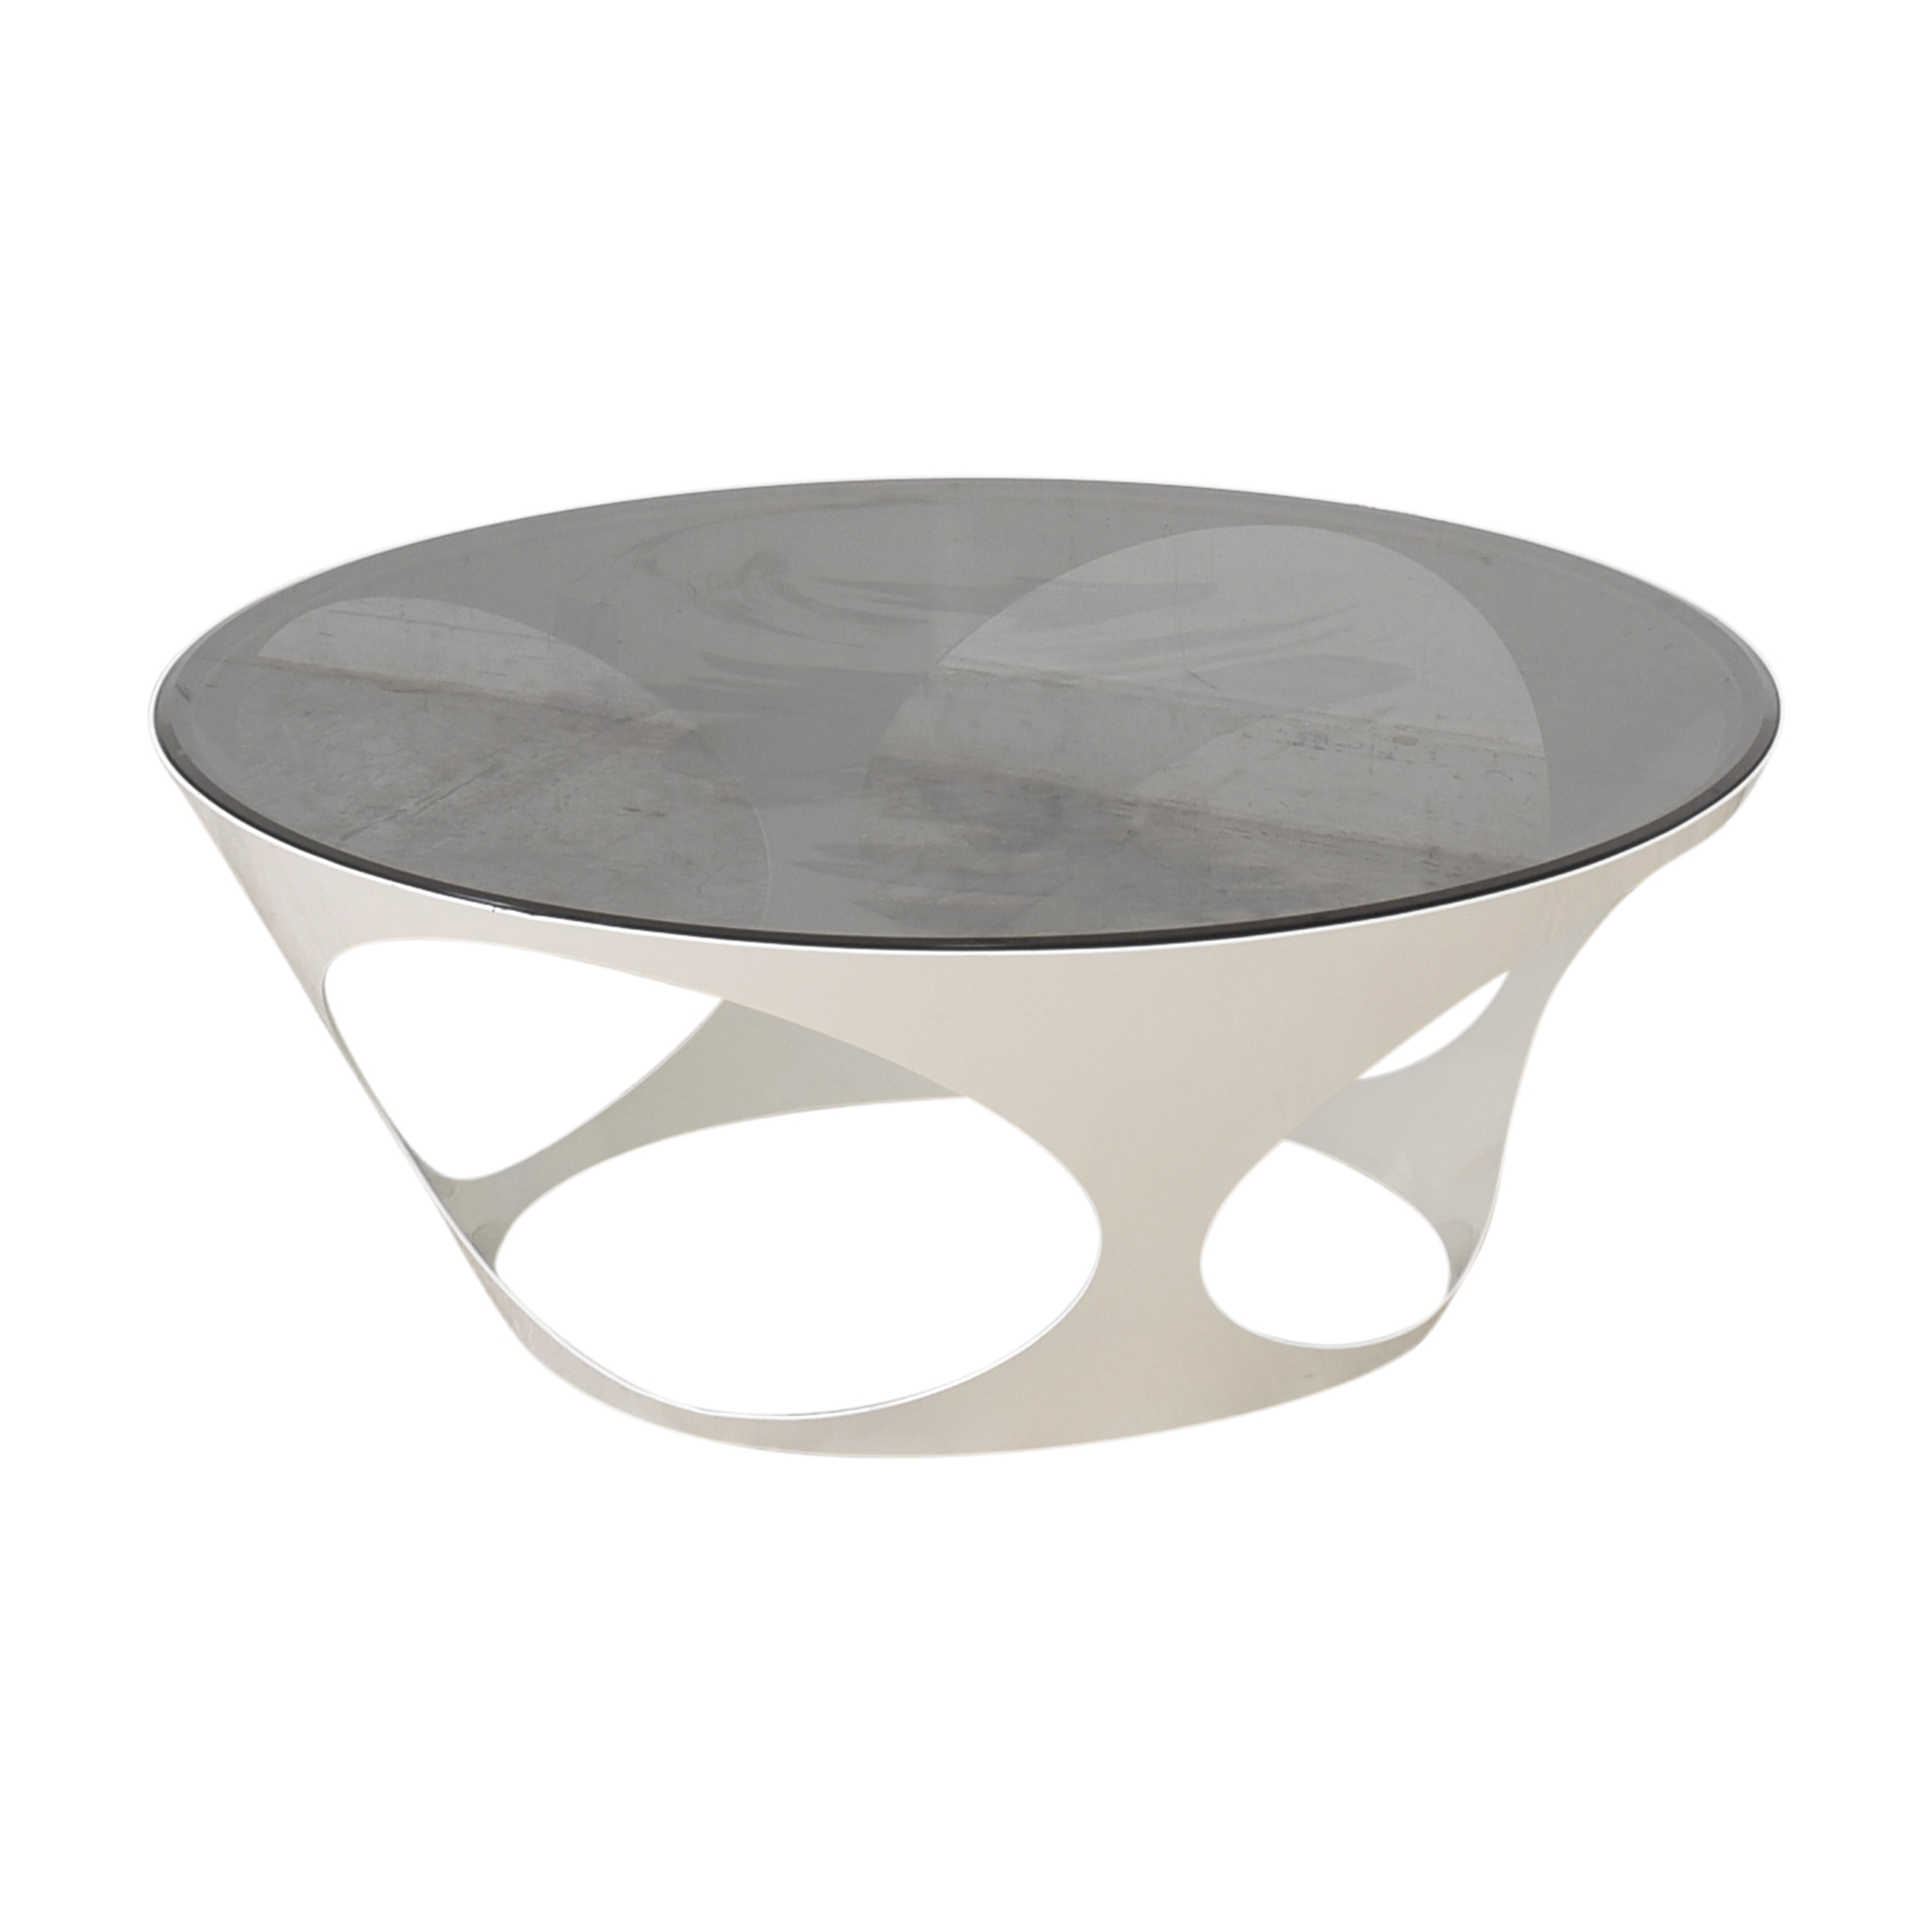 Vintage Modern Style Coffee Table for sale